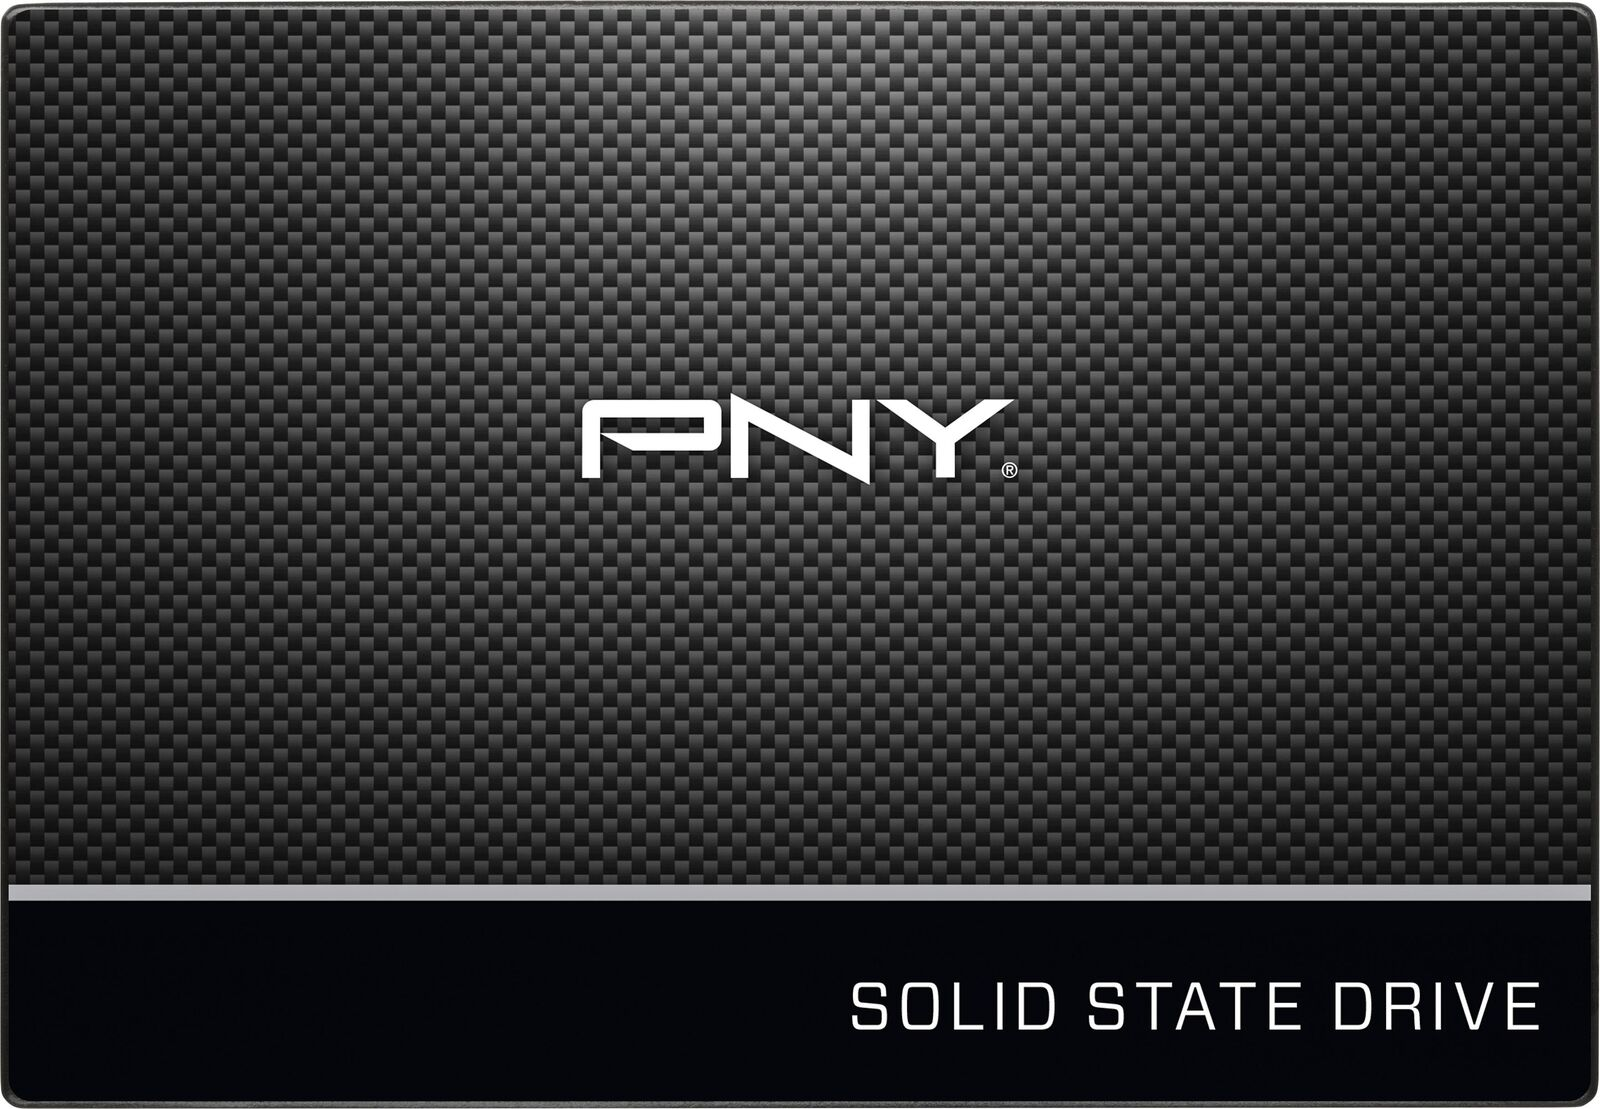 PNY - 240GB Internal SATA Solid State Drive. Buy it now for 29.99